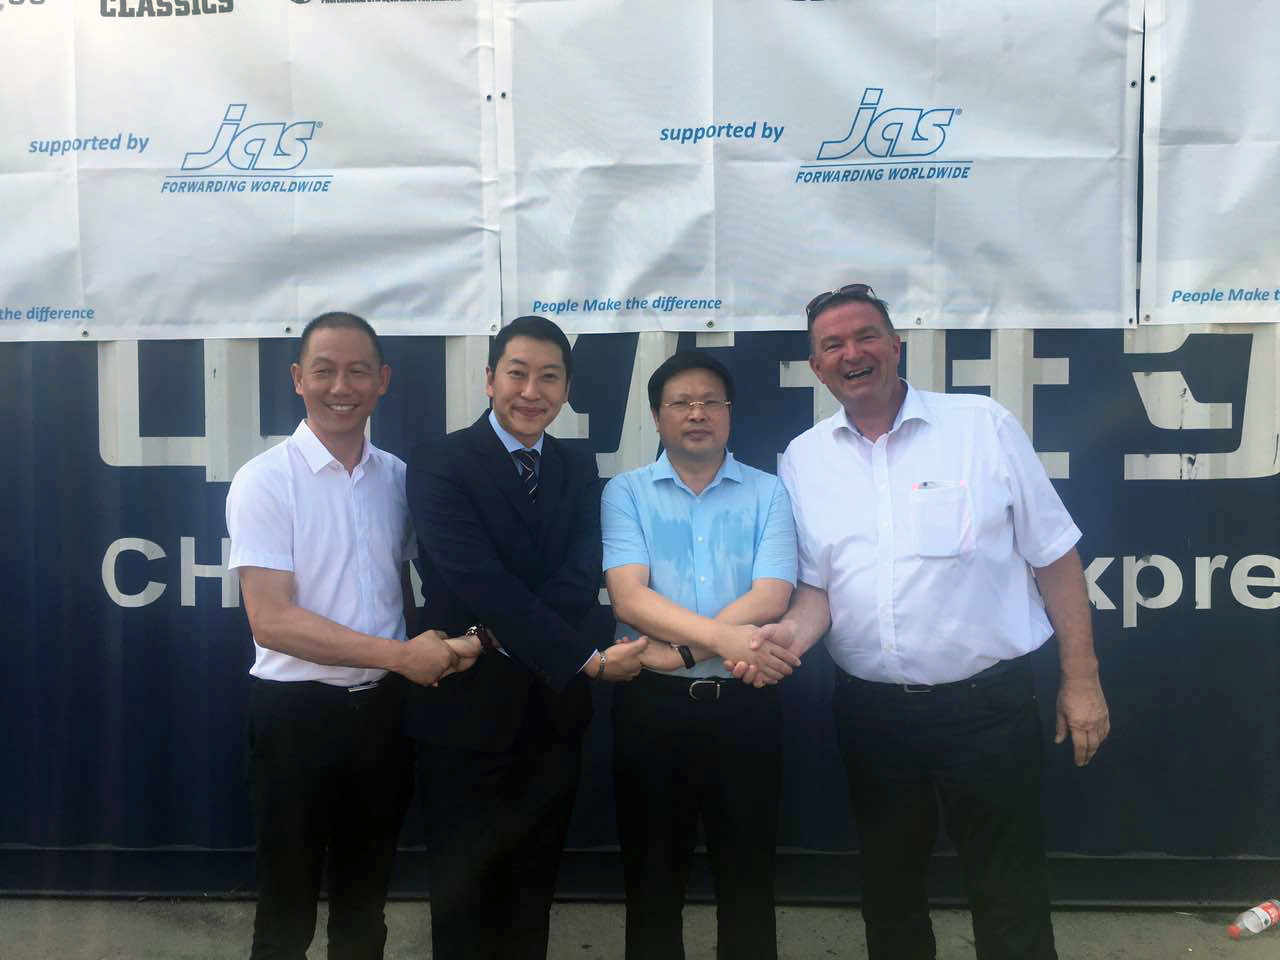 The attendees included Bruce Ning, General Manager of Northern and Central China, Kitty Yuen, Head of Ocean Freight (South China), Steven Su, Branch Manager (Xiamen), Tina Zhou, Branch Manager (Ningbo) and Bernd Scheunemann, BDM - Frankfurt (Germany).